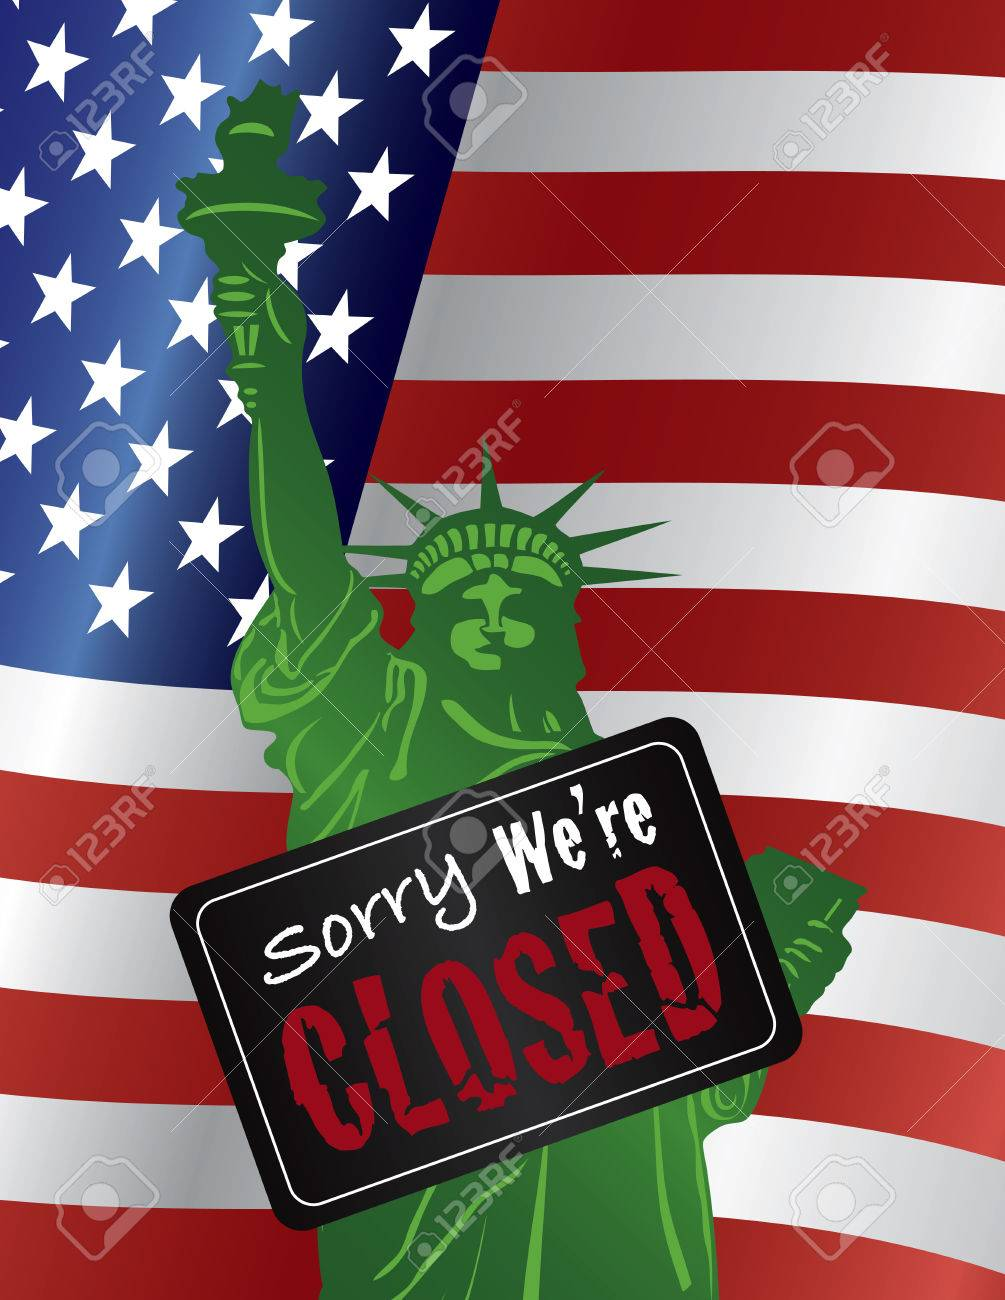 Government Shutdown Statue of Liberty Closeup with Sorry We Are Closed Sign on USA American Flag Stock Vector - 22706986